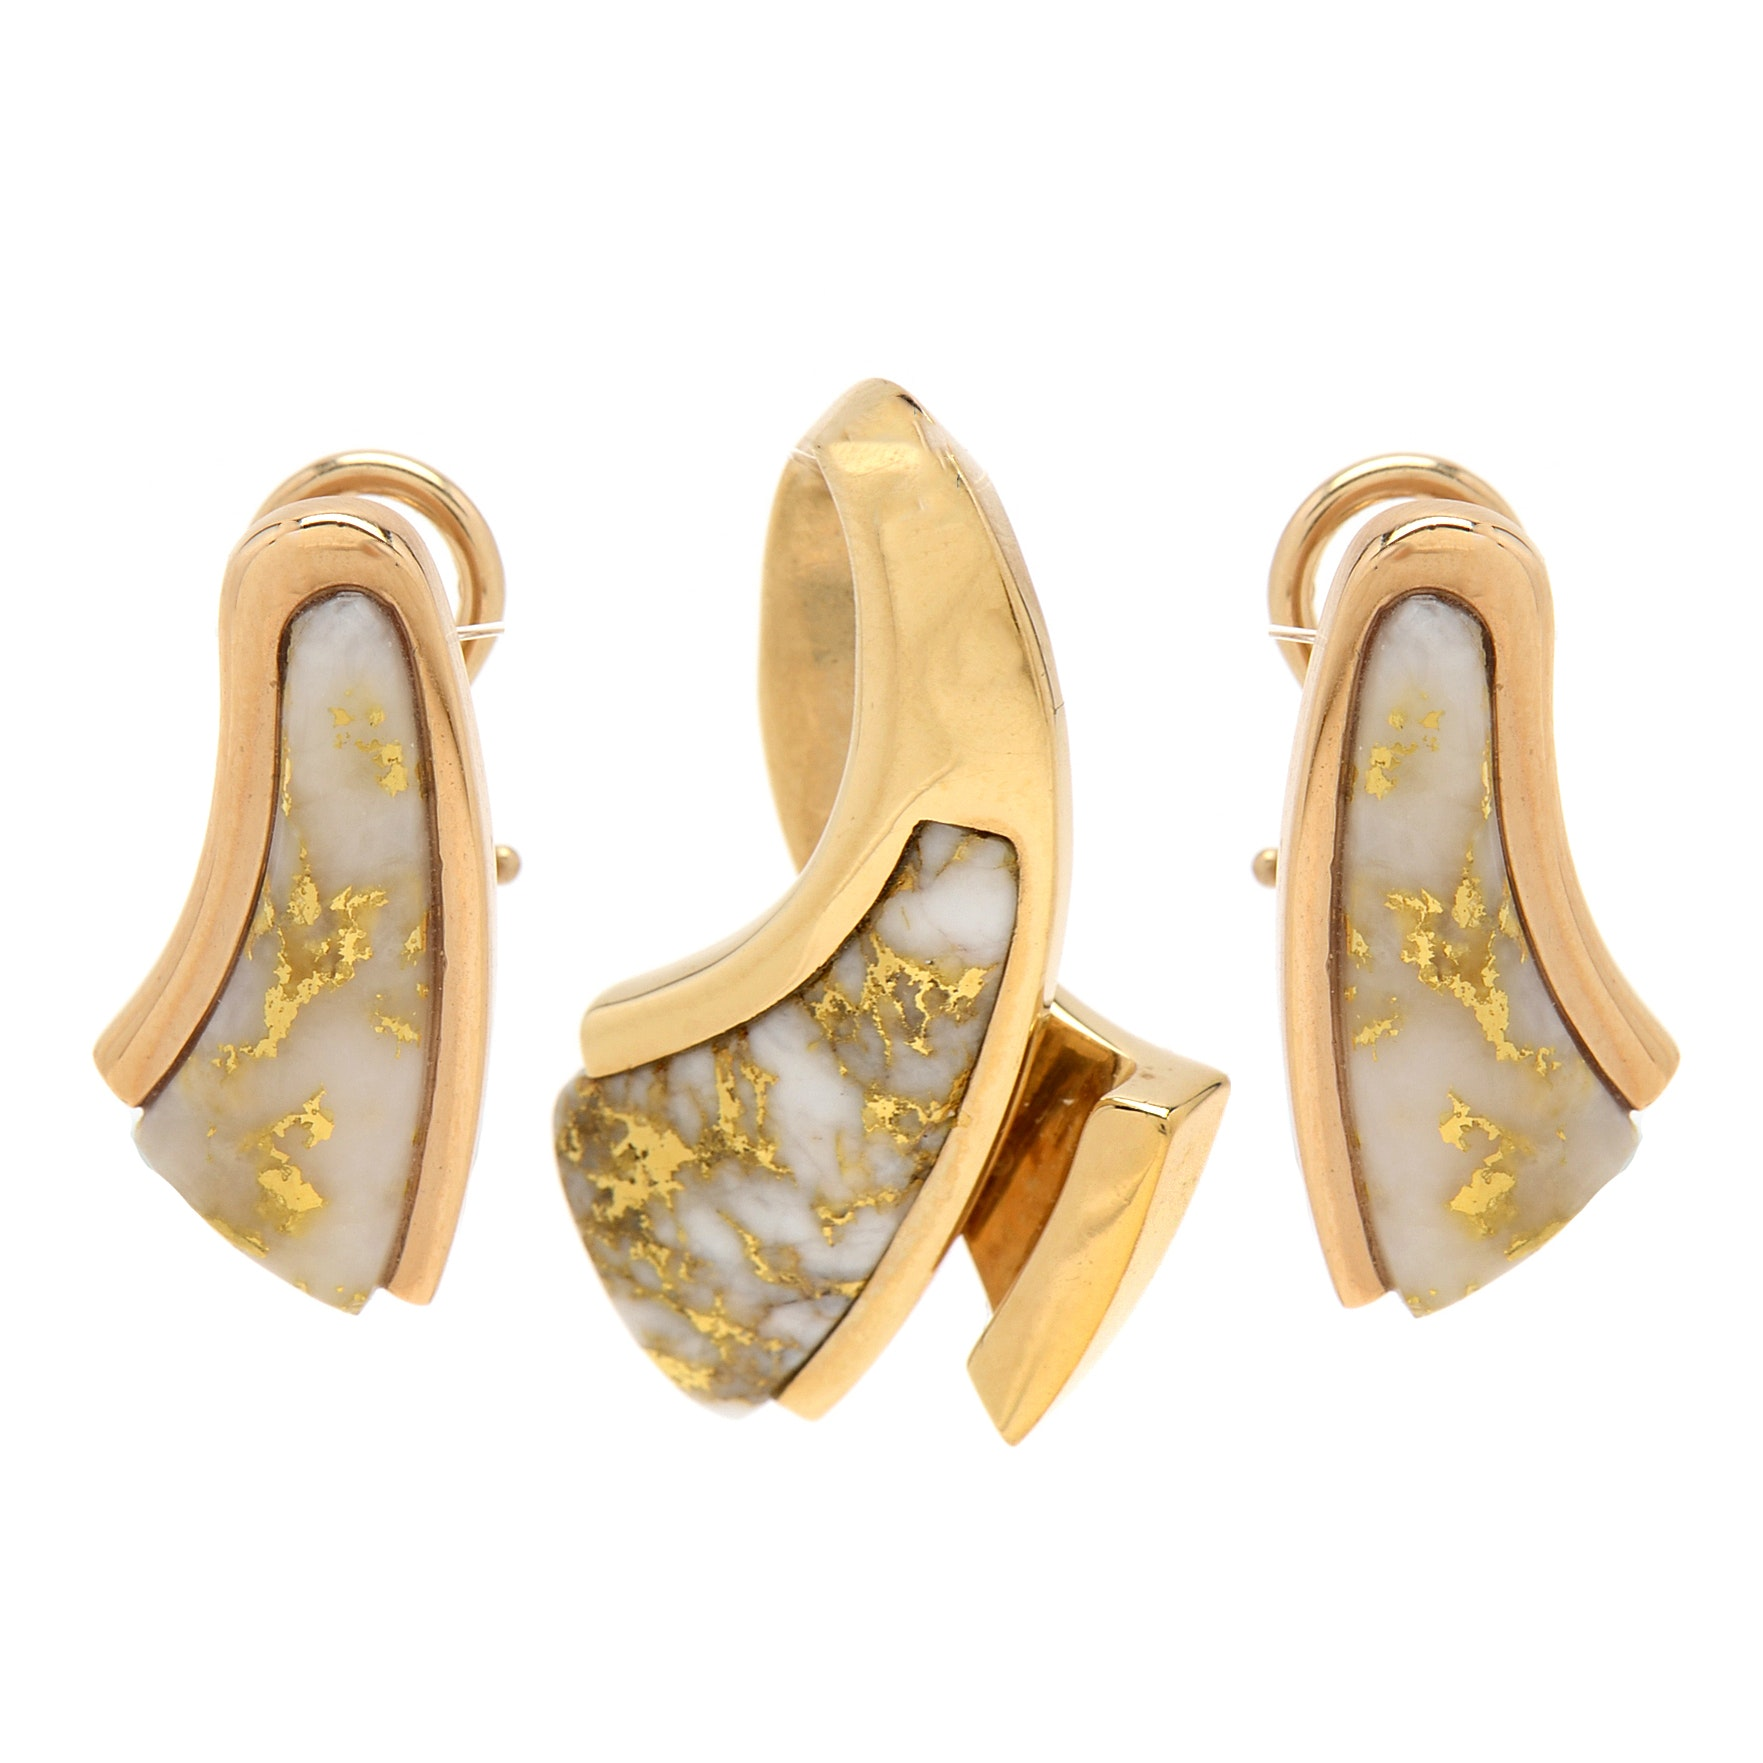 14K Yellow Gold Inlaid Agate Earrings and Pendant